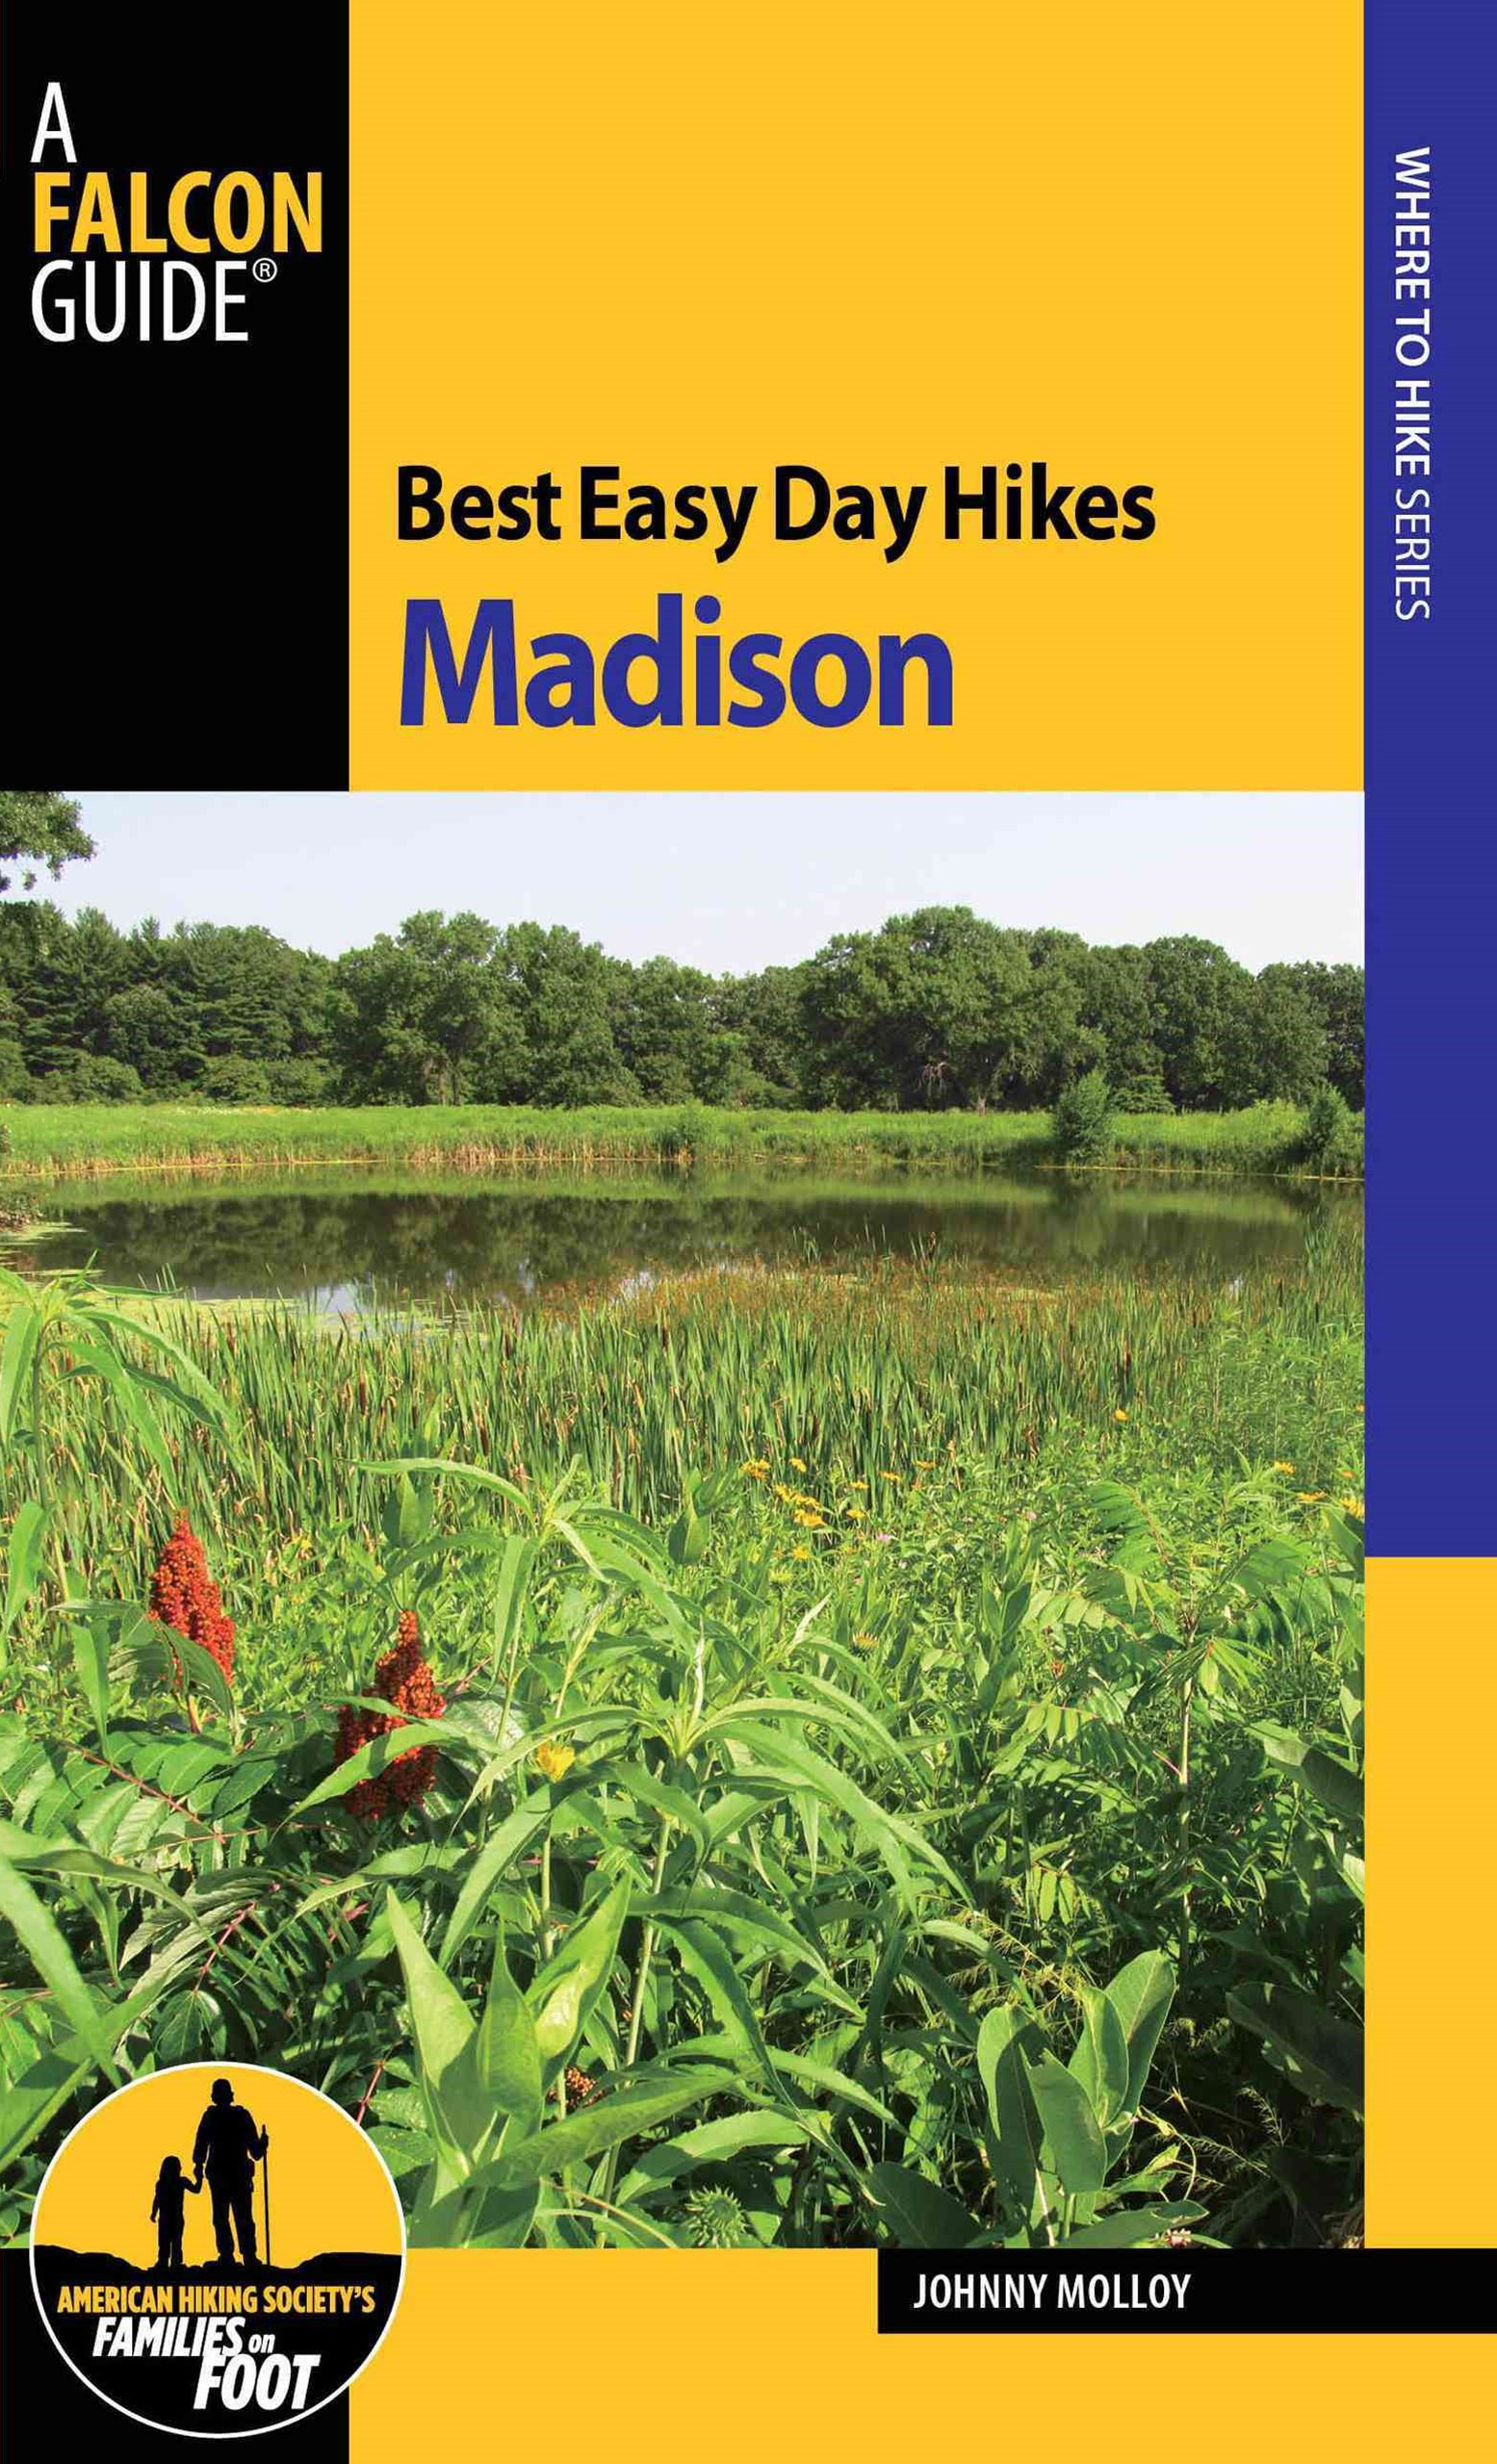 Madison - Best Easy Day Hikes